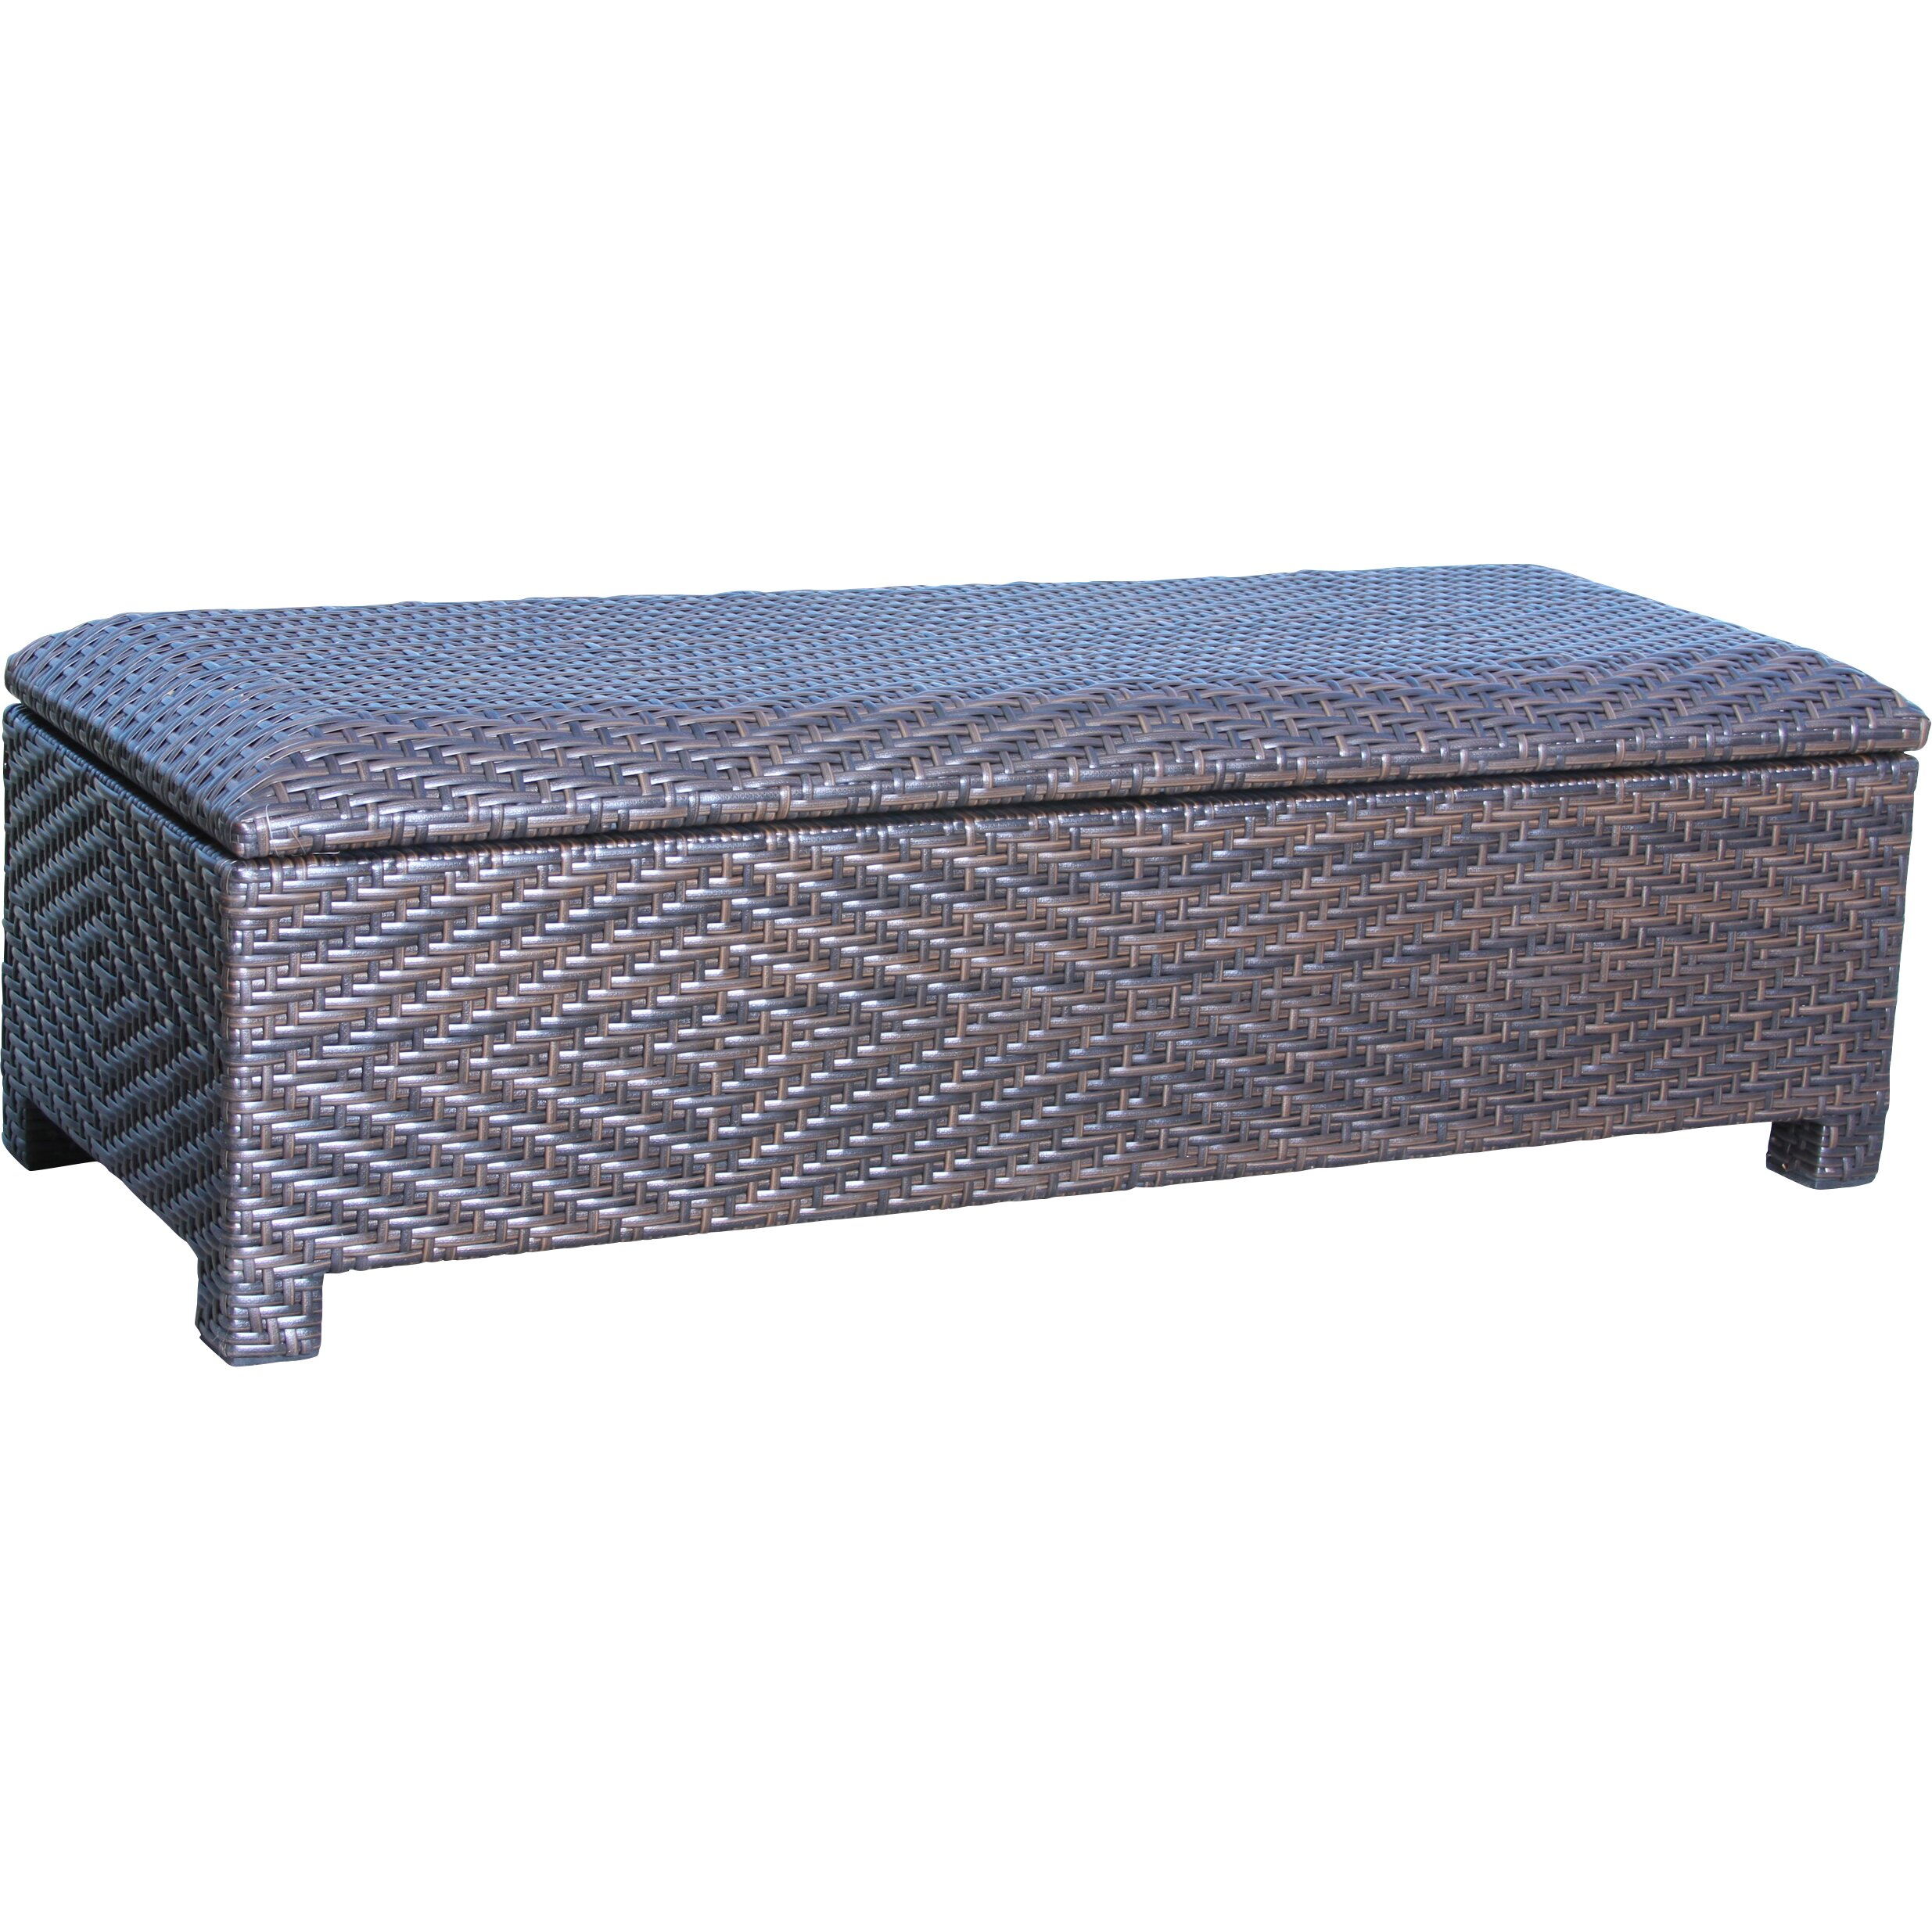 Home loft concepts casarano 30 gallon wicker storage bench reviews wayfair 30 bench